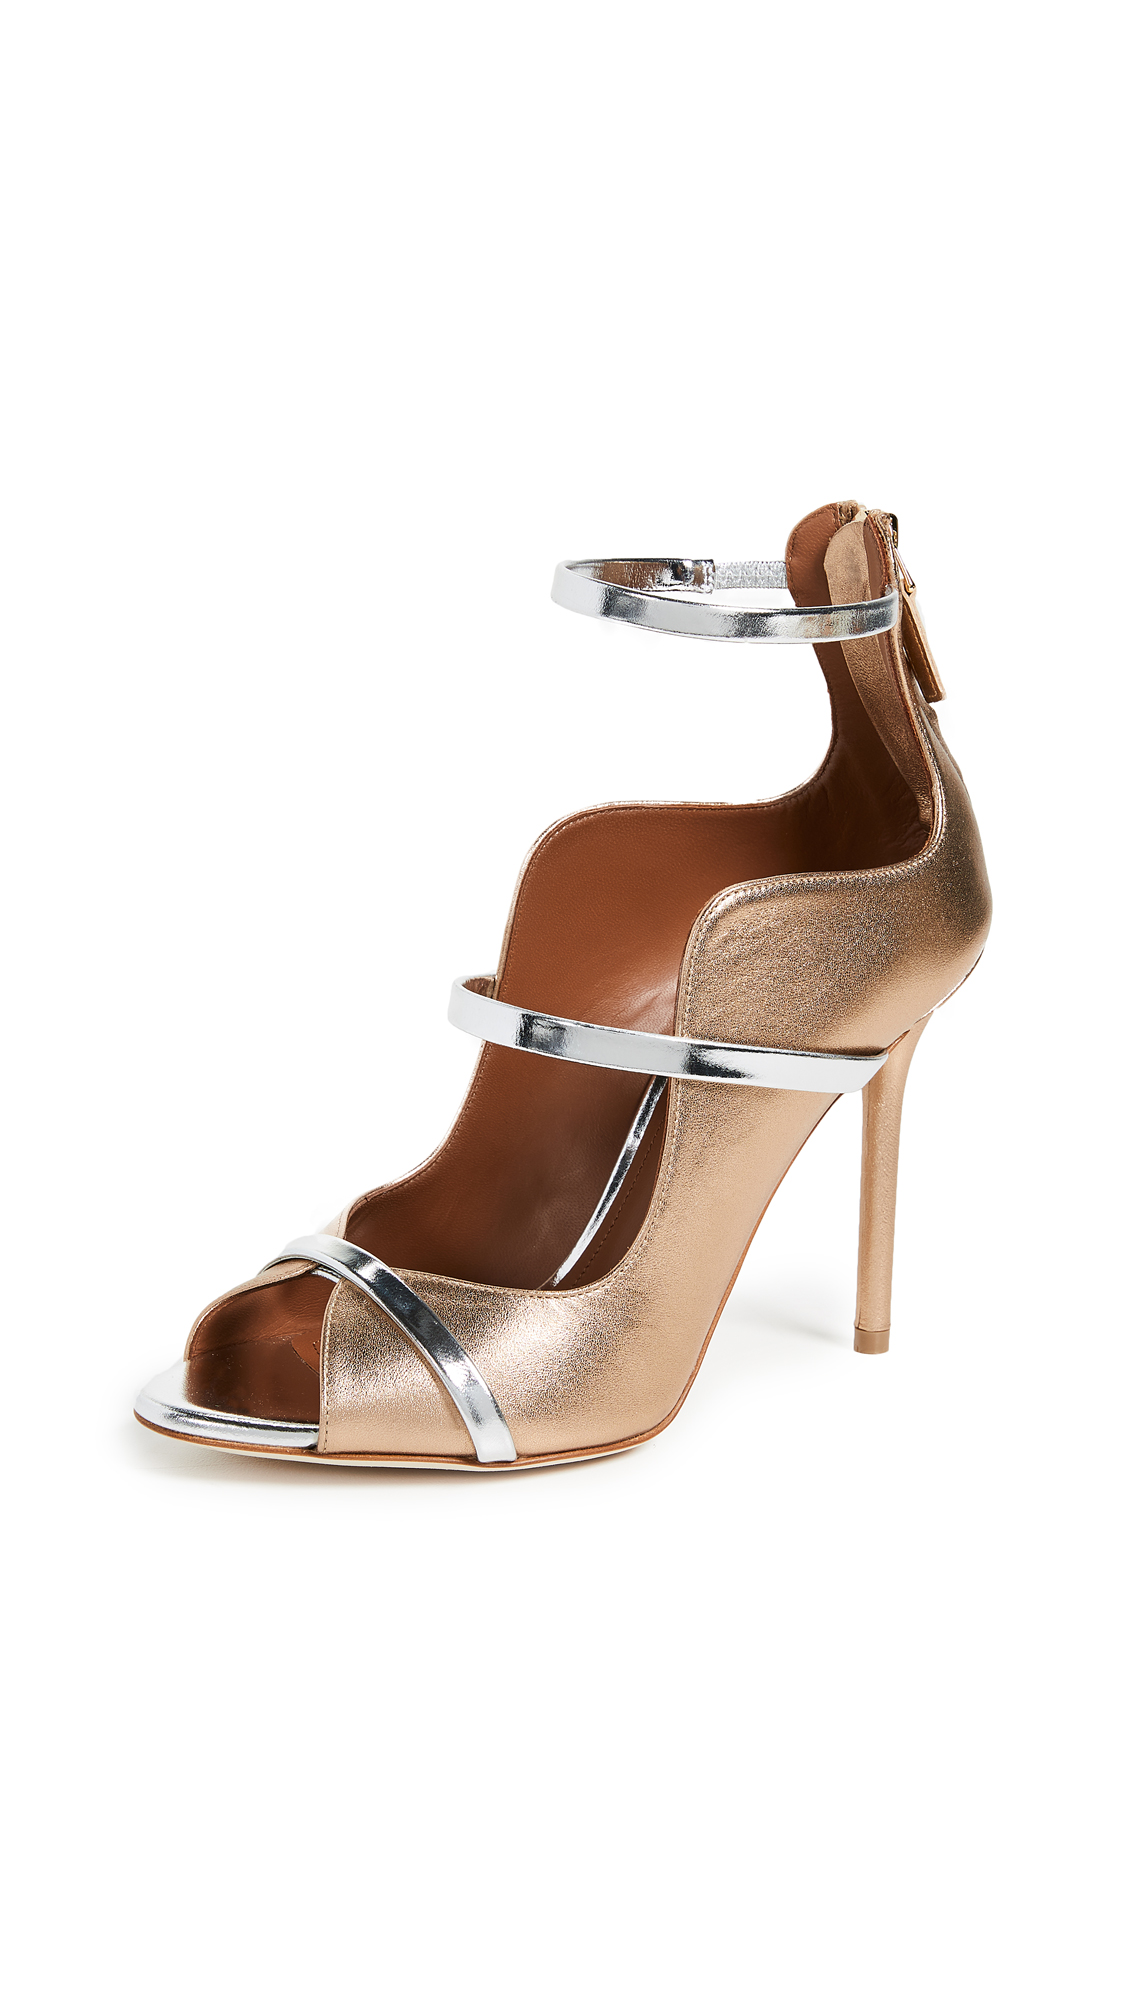 Malone Souliers by Roy Luwolt Mika Pump - Gold/Silver